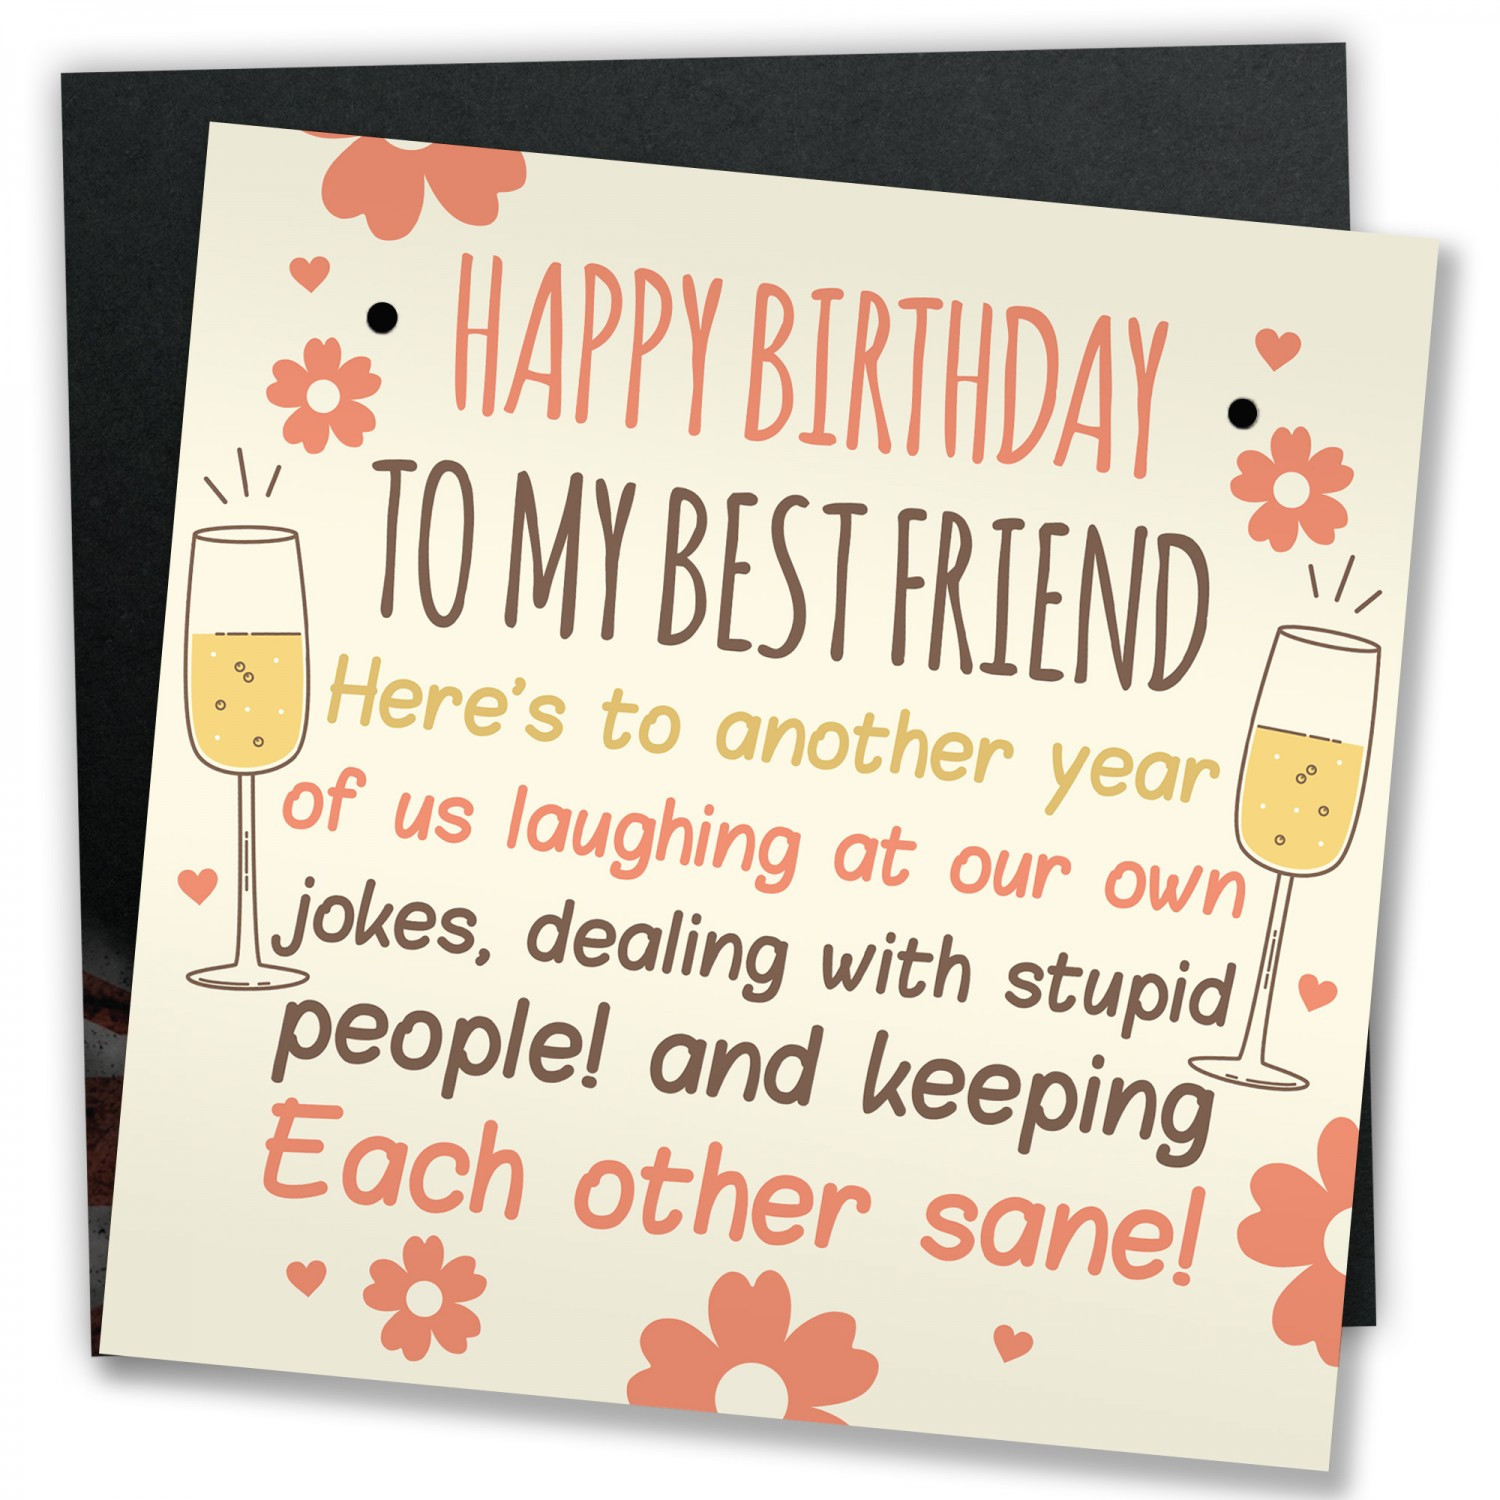 Funny Birthday Card For Friend  Funny Best Friend Birthday Card Friendship Gifts Sign